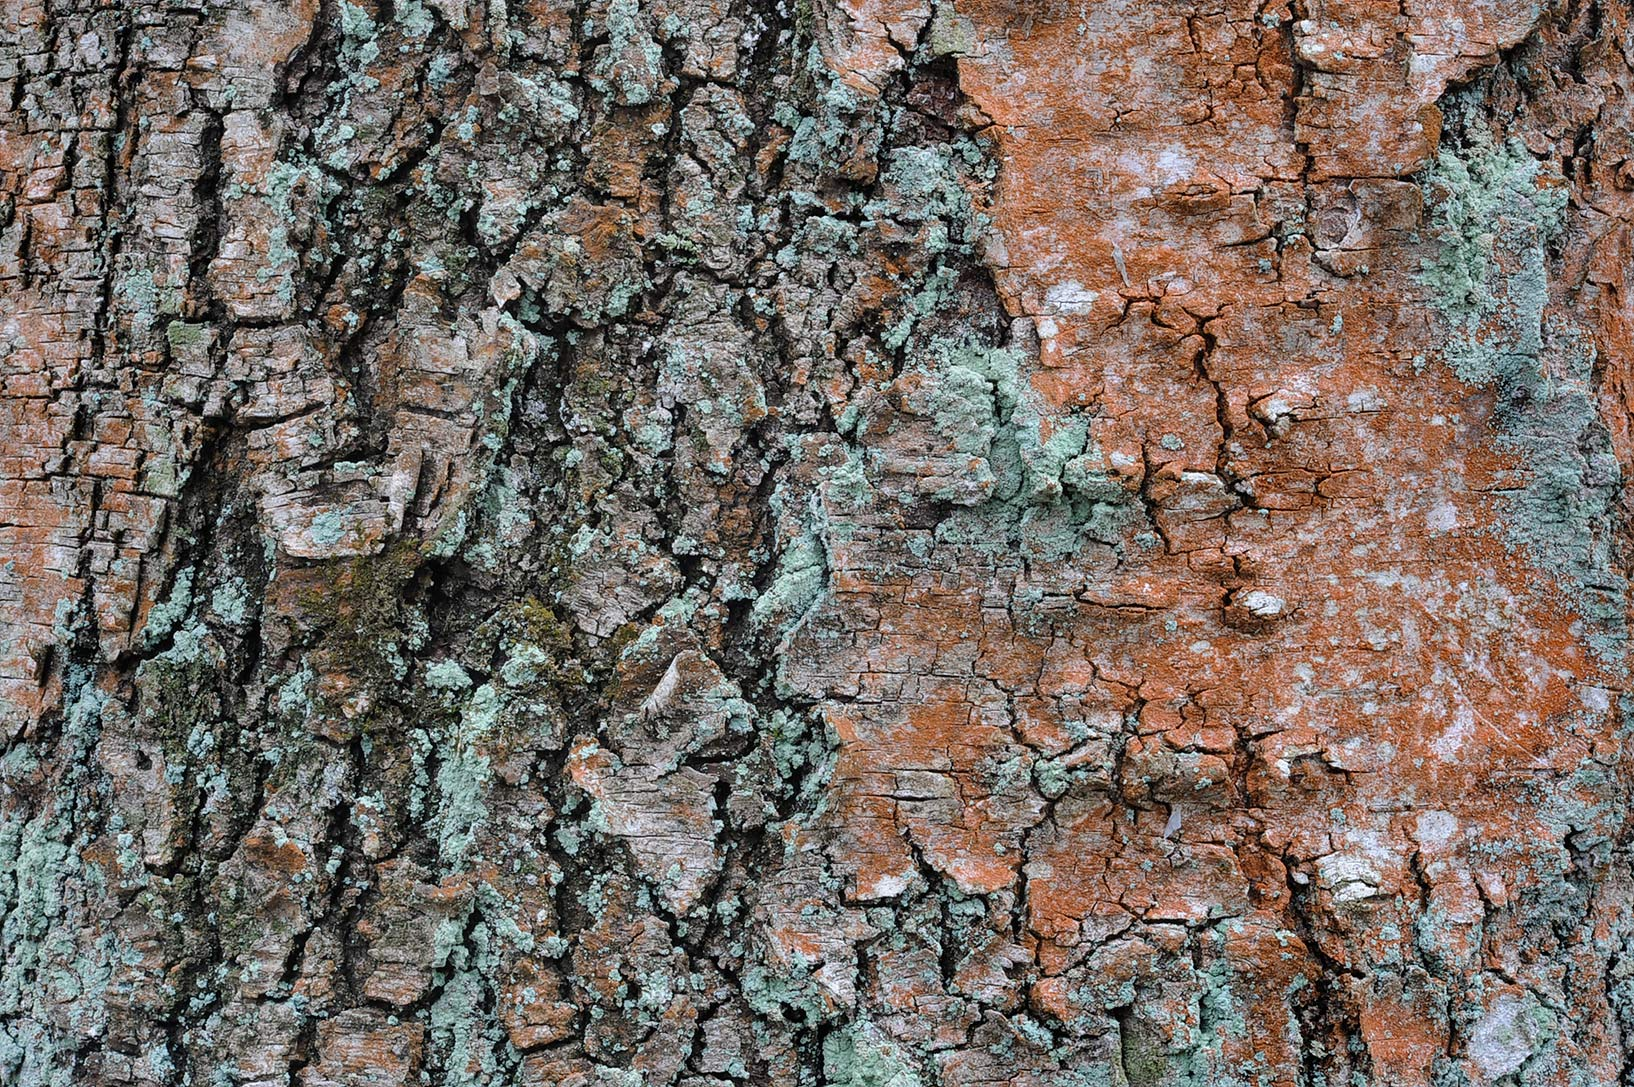 Birch bark with red lichen on Krasnodolinnaya...suburb of St.Petersburg, Russia